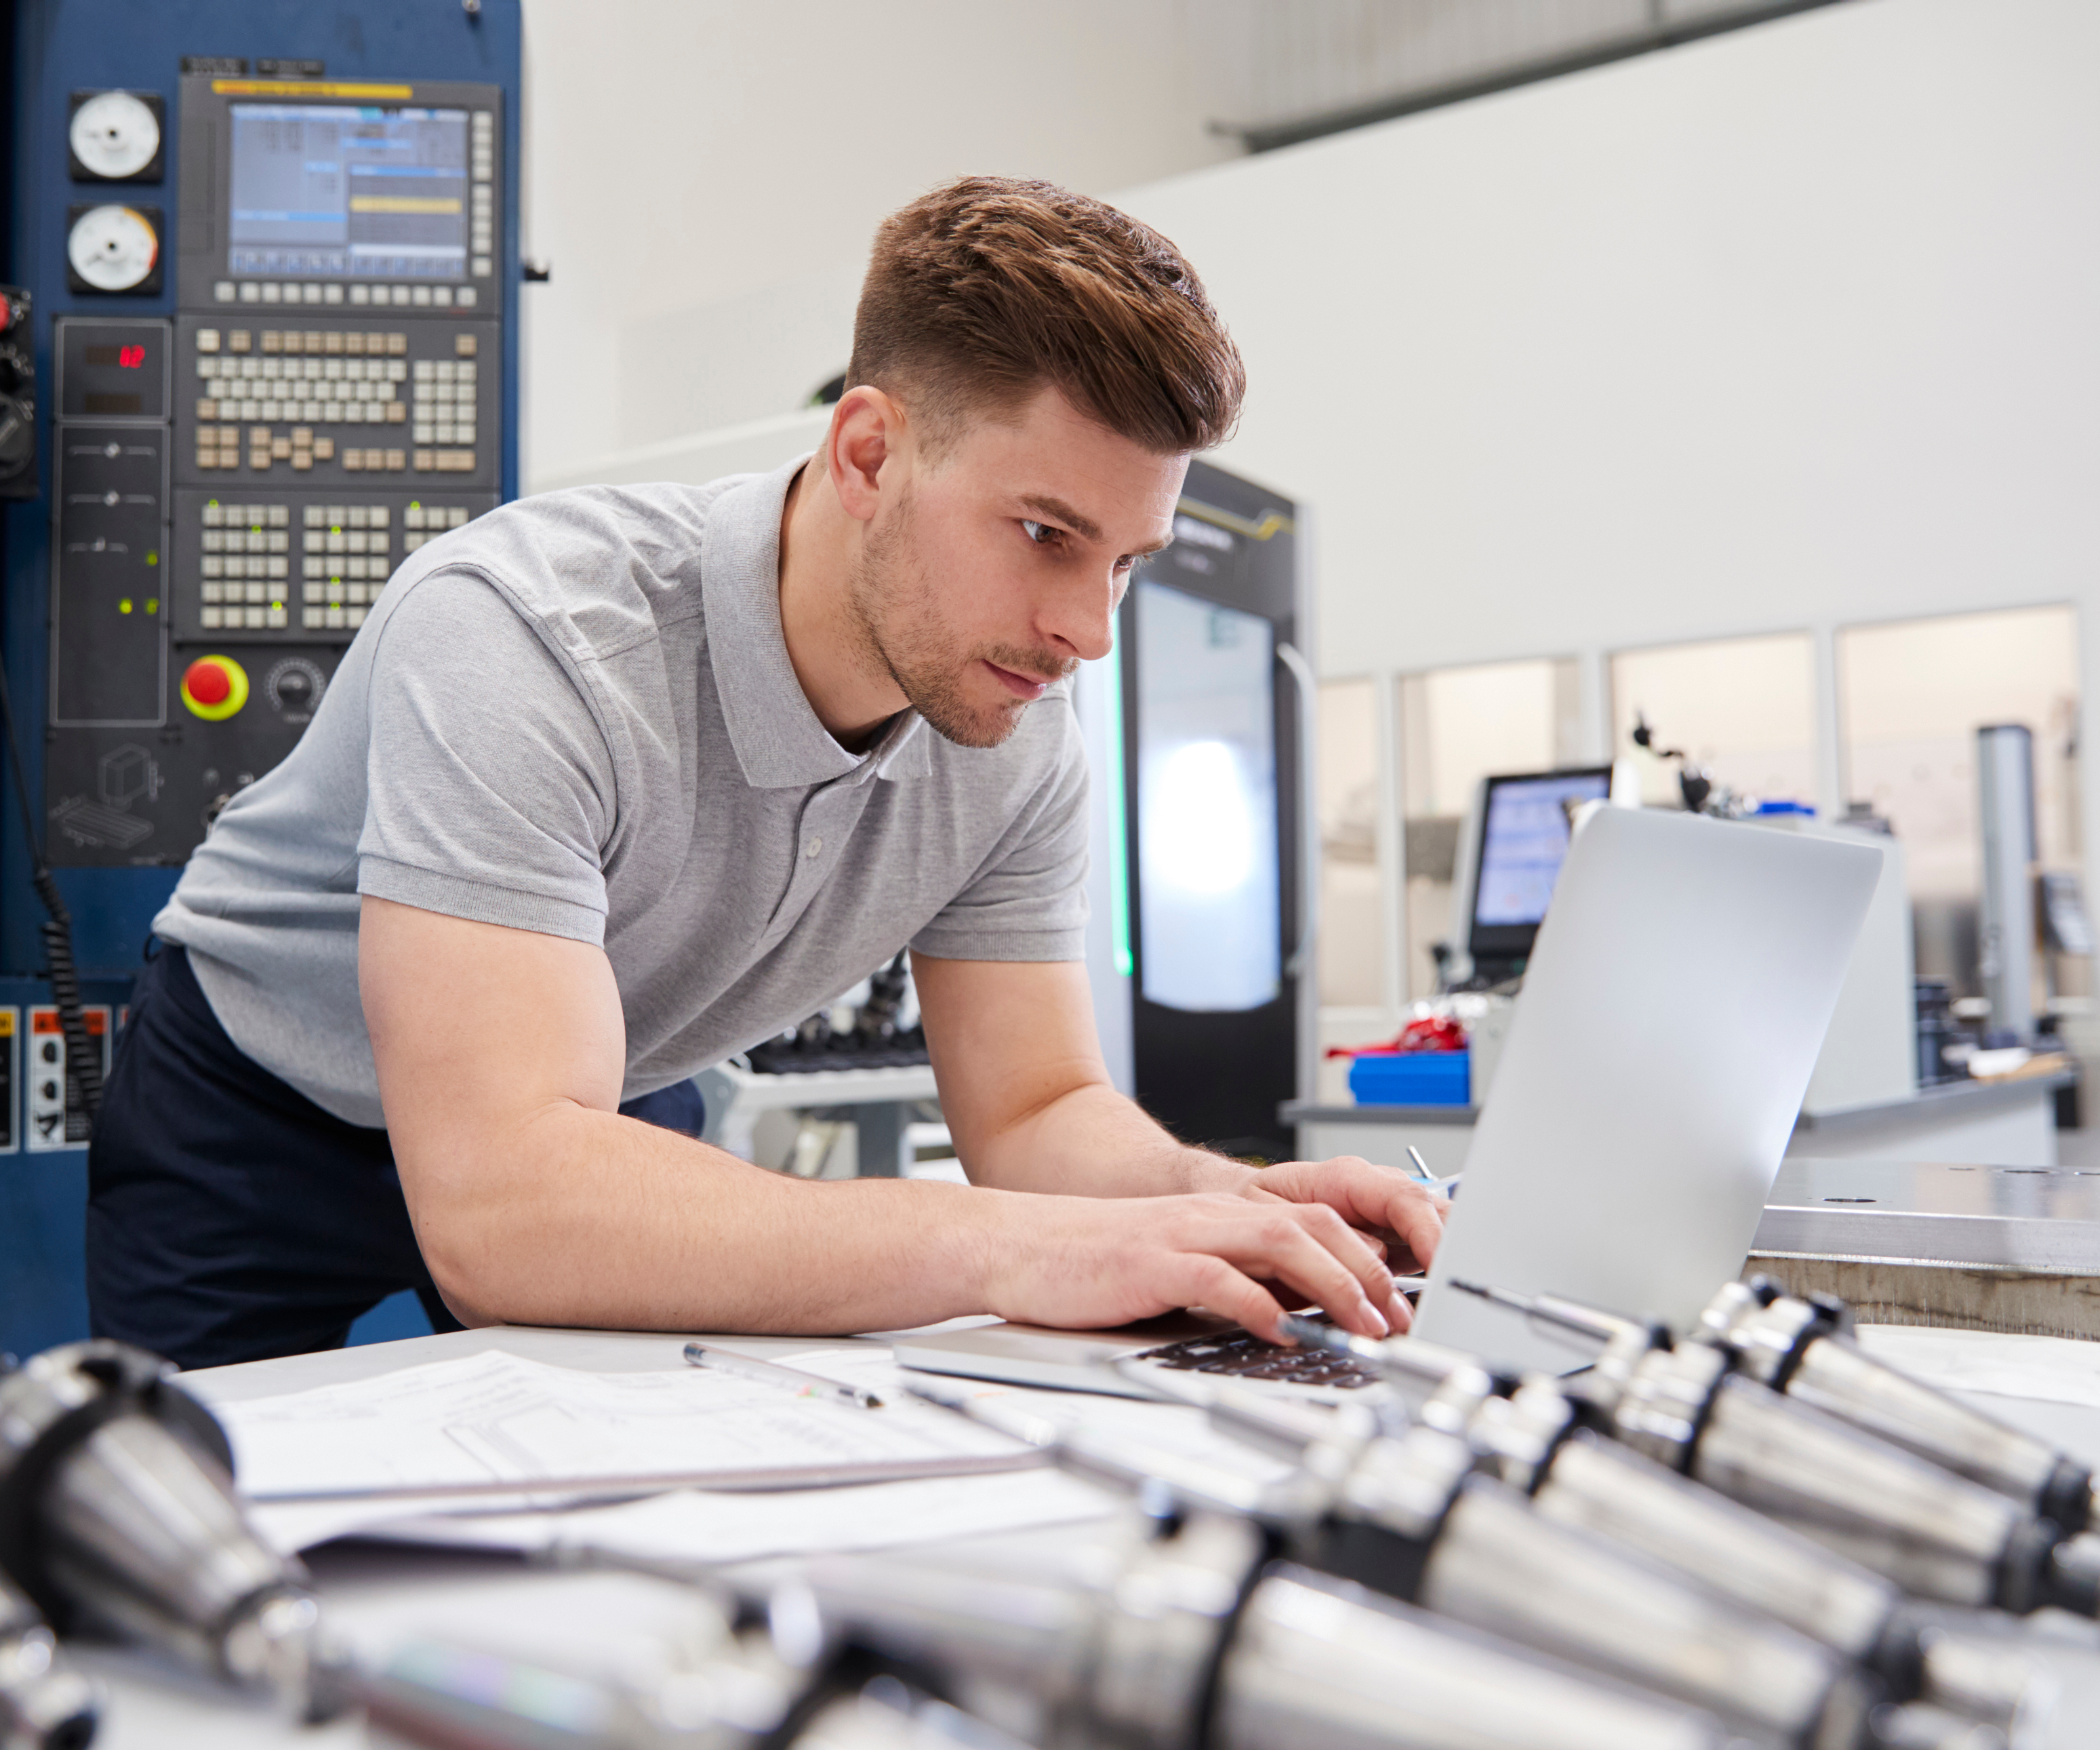 6 Steps to Take Before Creating a CNC Program